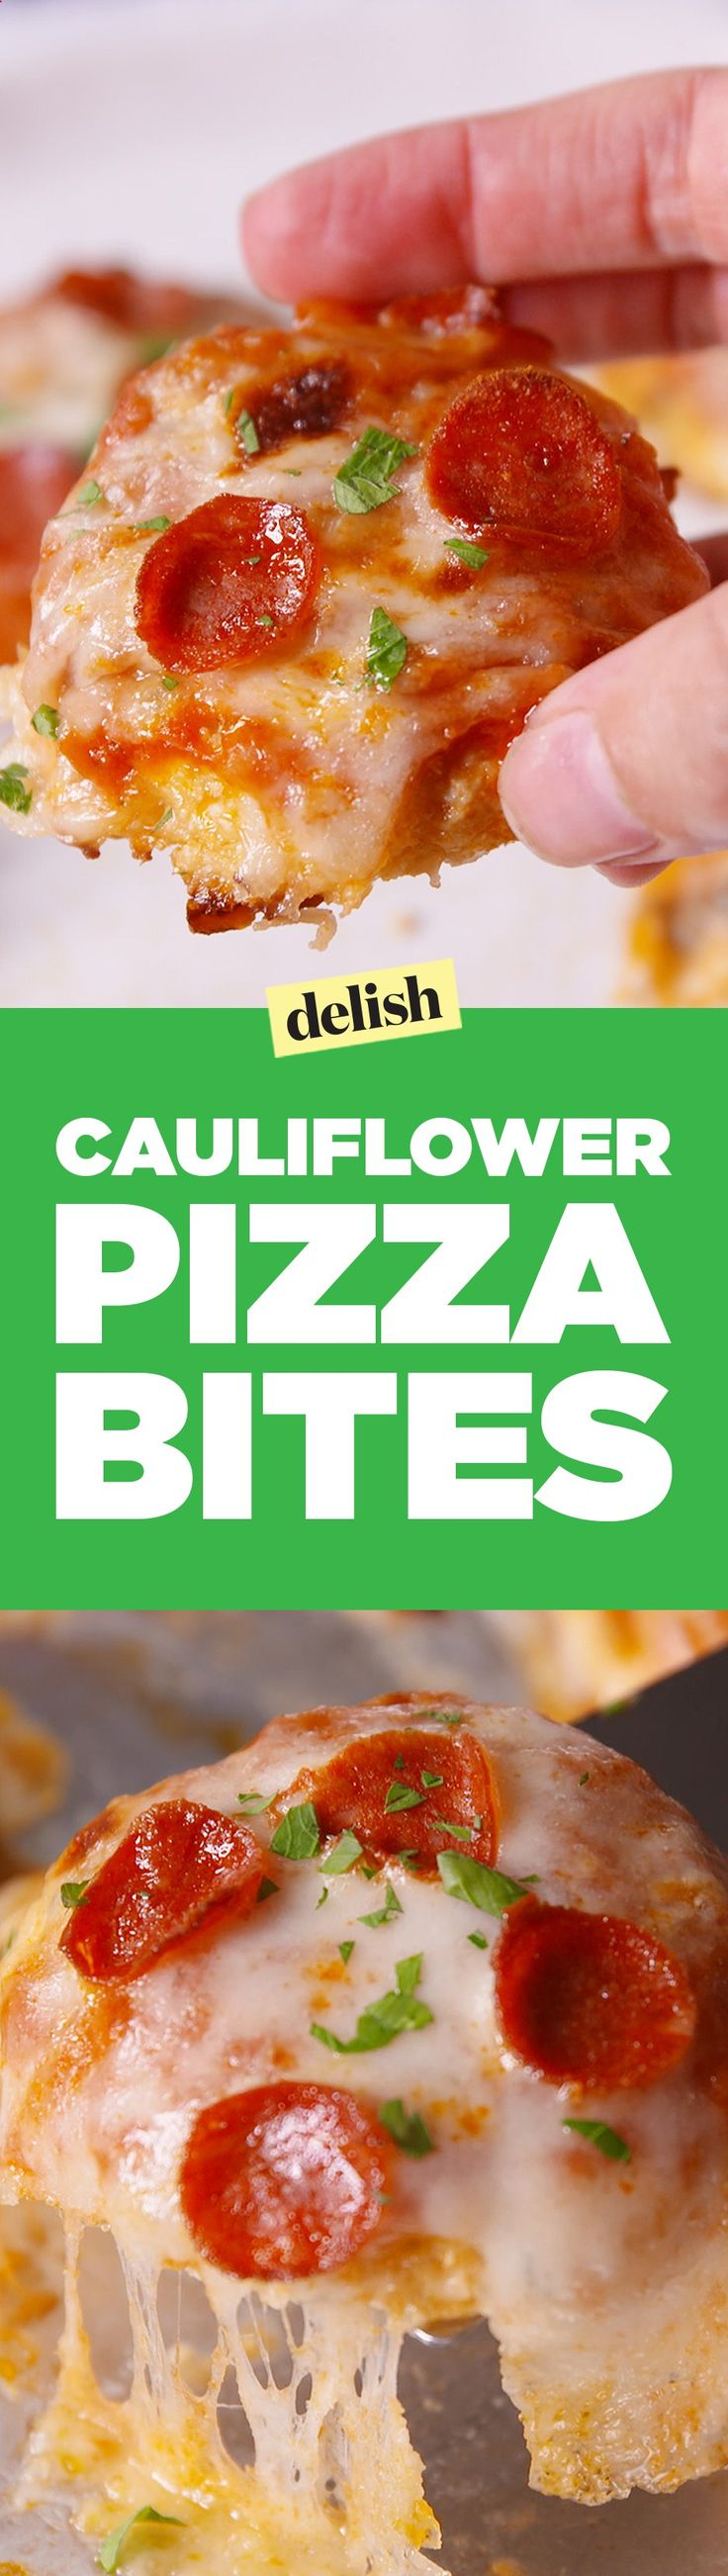 Cauliflower Pizza Bites will totally trick your kids into eating their vegetables. Get the recipe on Delish.com.